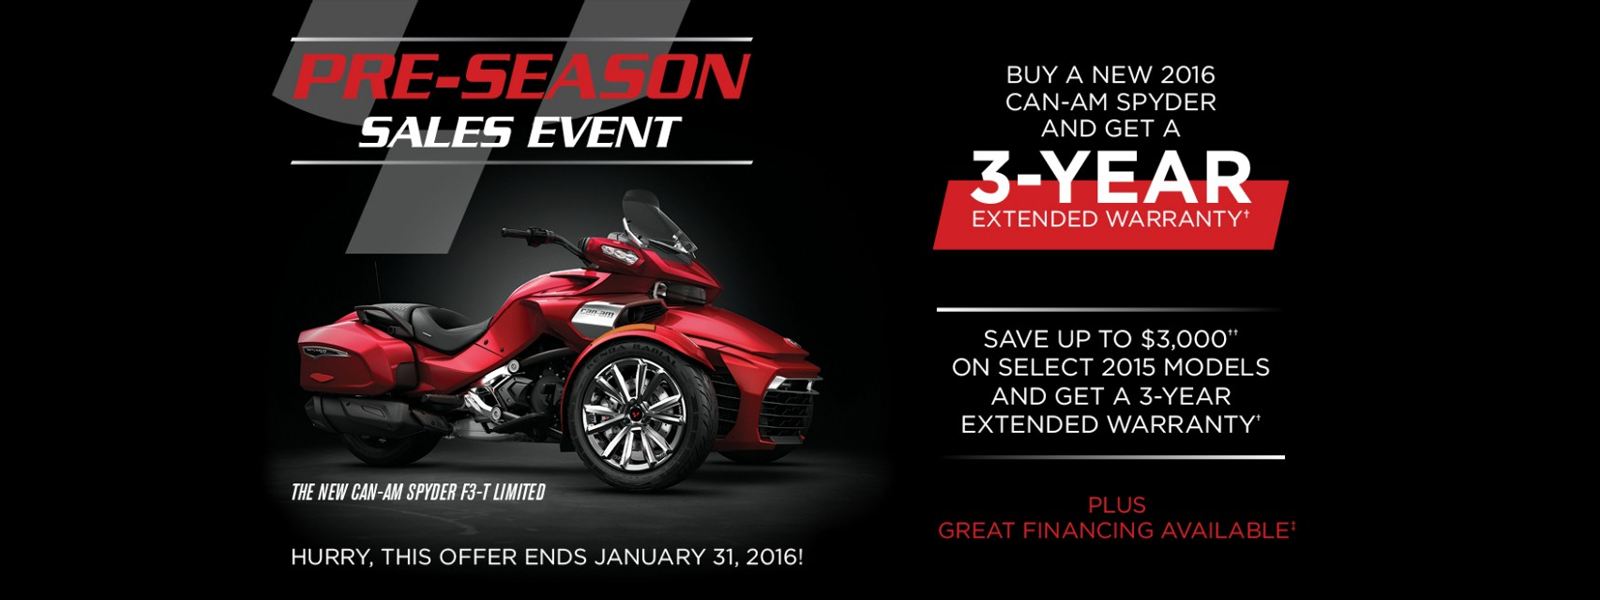 Can-Am Spyder OEM Promotion - Kissimmee Can-Am Spyder Dealer